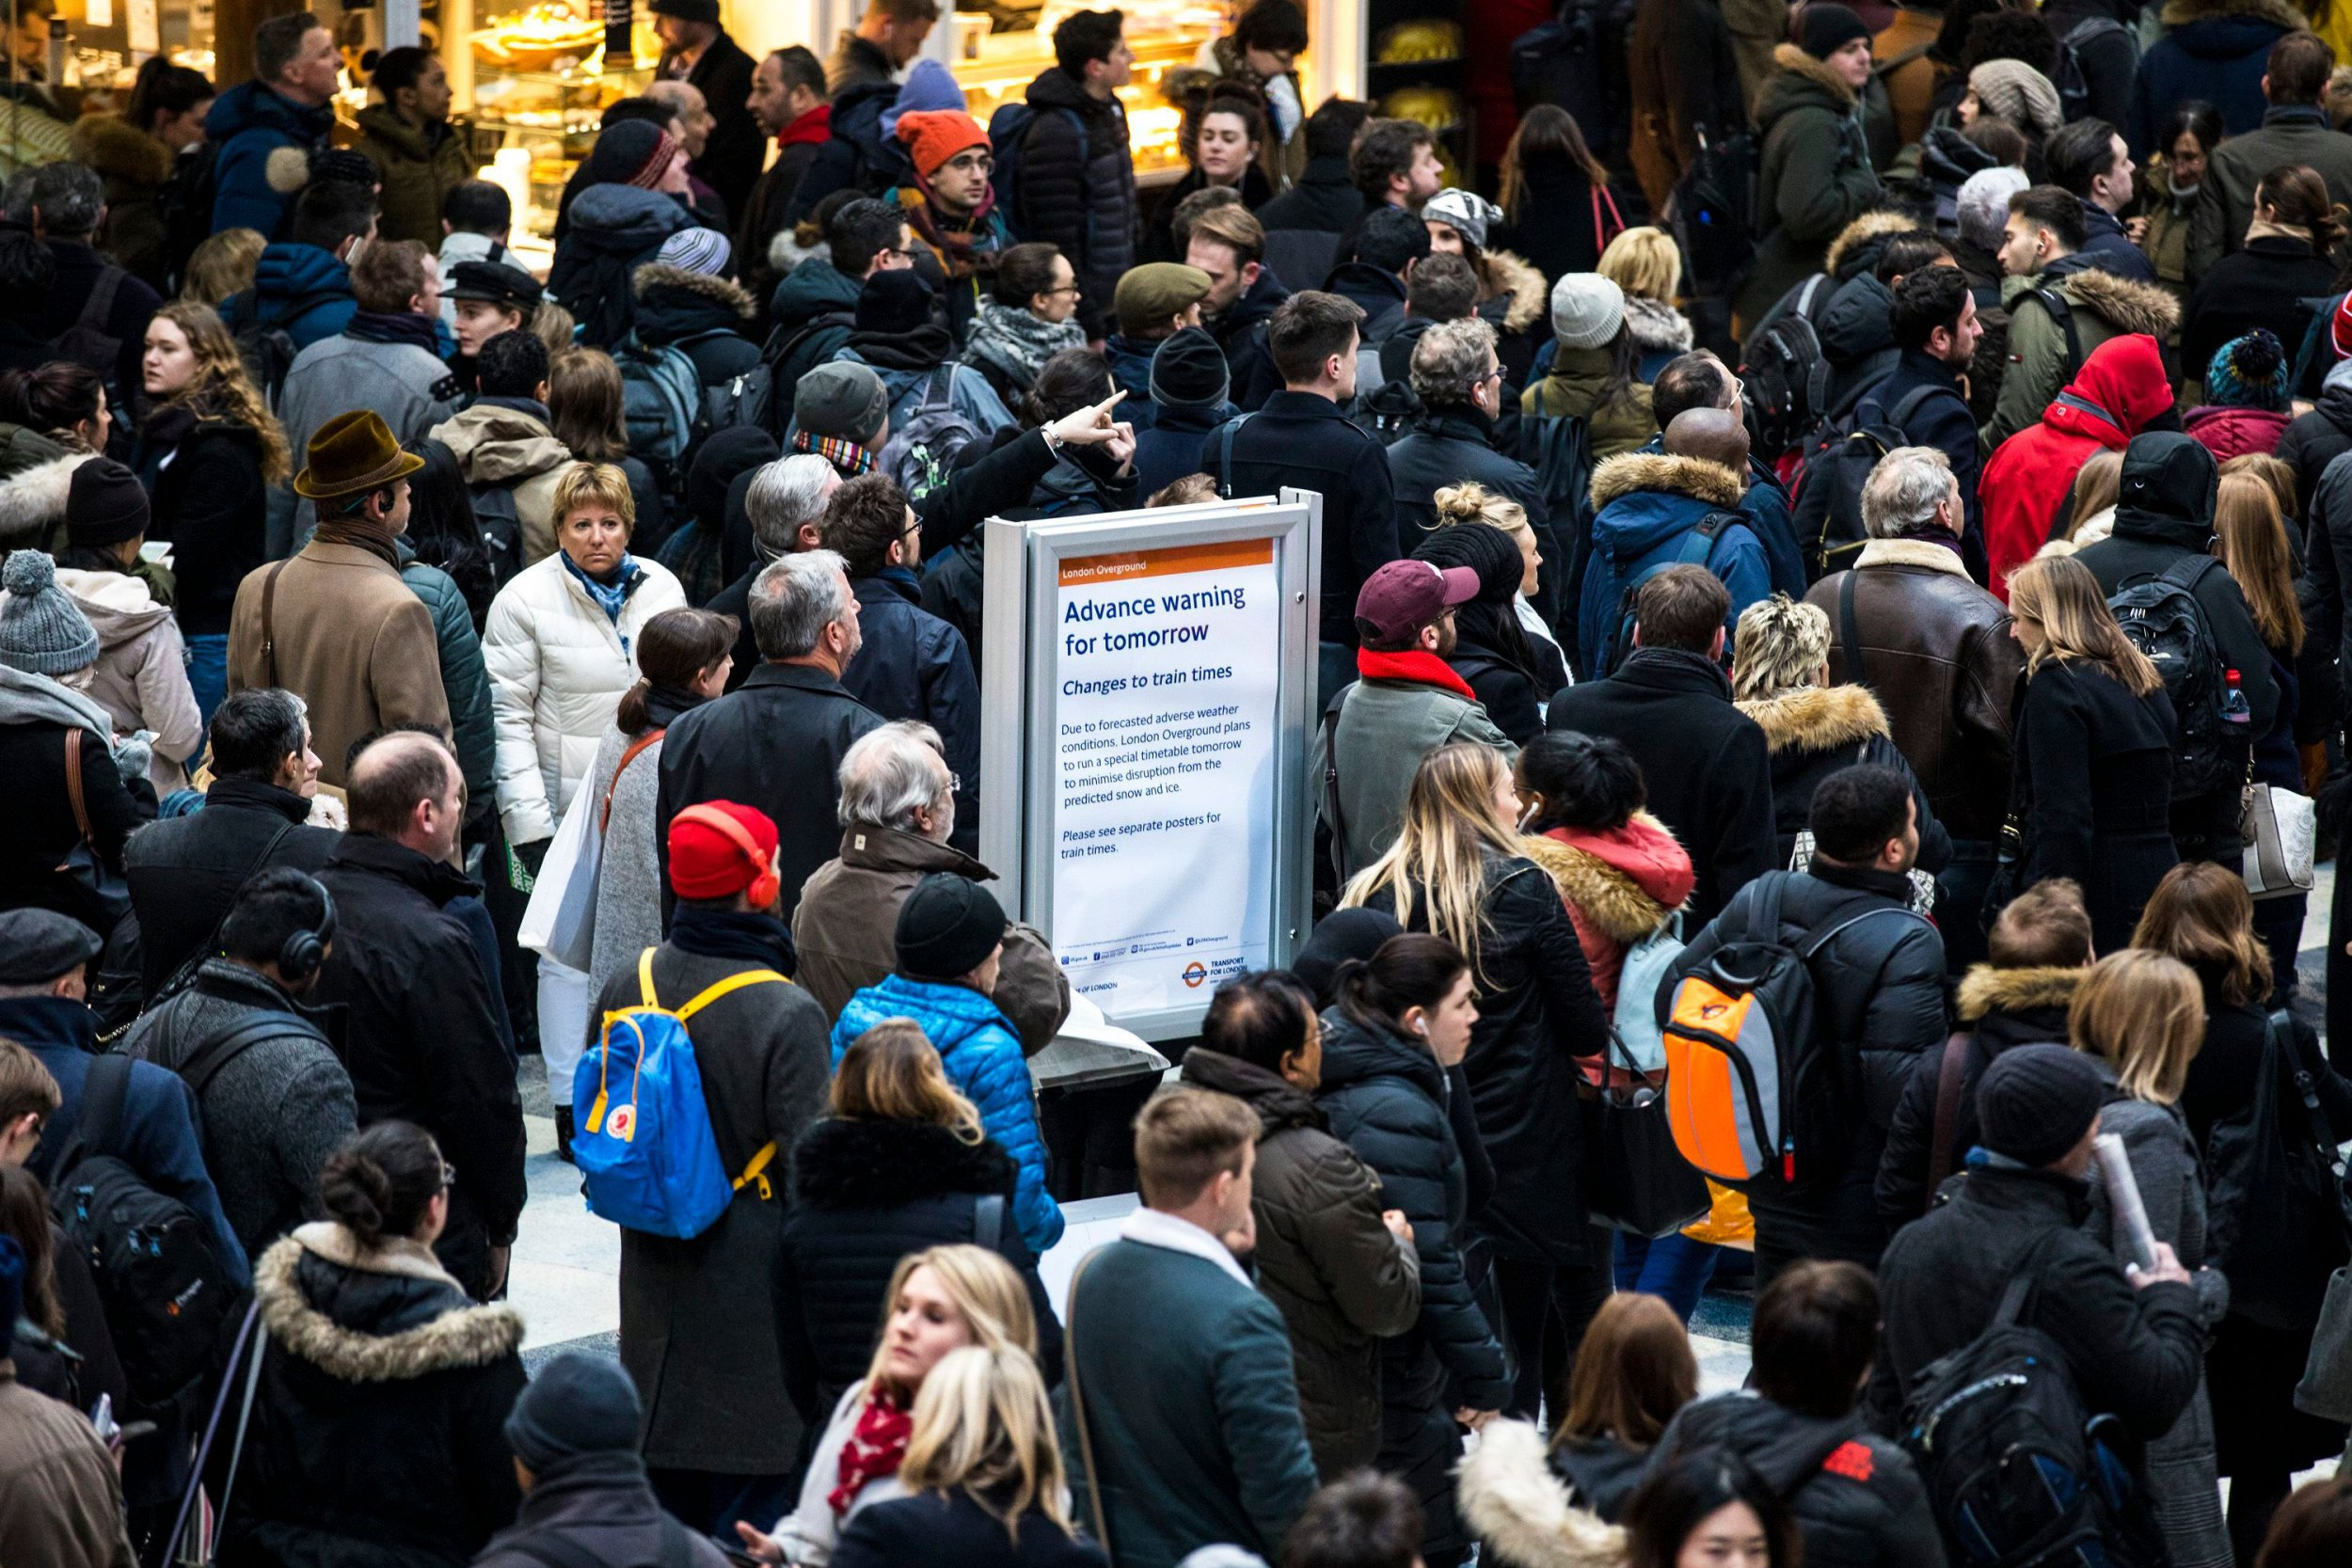 Tube strikes planned for Central and Piccadilly lines on same day